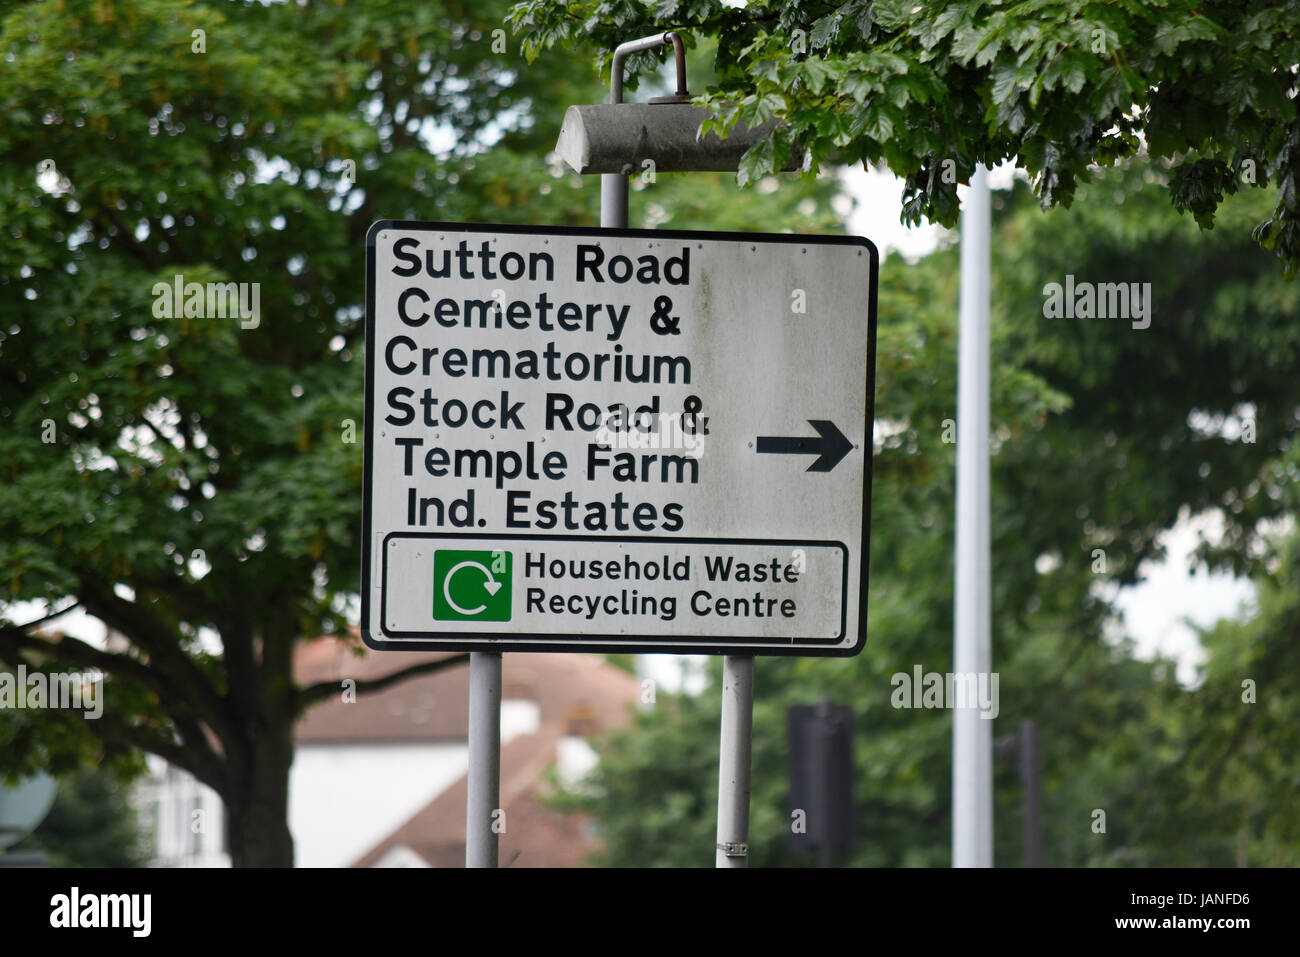 Road sign for Sutton Road, cemetery, crematorium, Stock Road, Temple Farm Industrial Estate, Household waste recycling - Stock Image